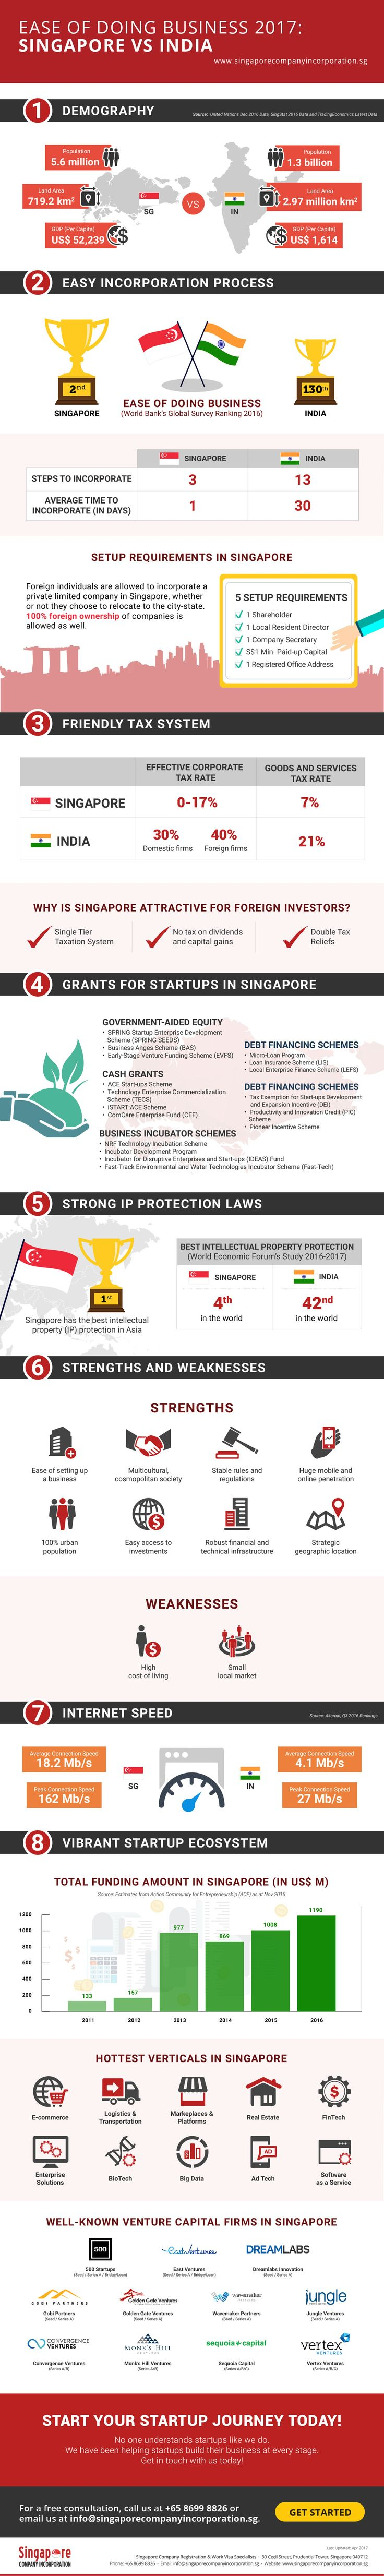 In this infographics we measure the ease of doing business in the two countries via indicators such as Demography, Company Incorporation Process, Corporate Tax Rate, Internet Speed and IP Protection Laws